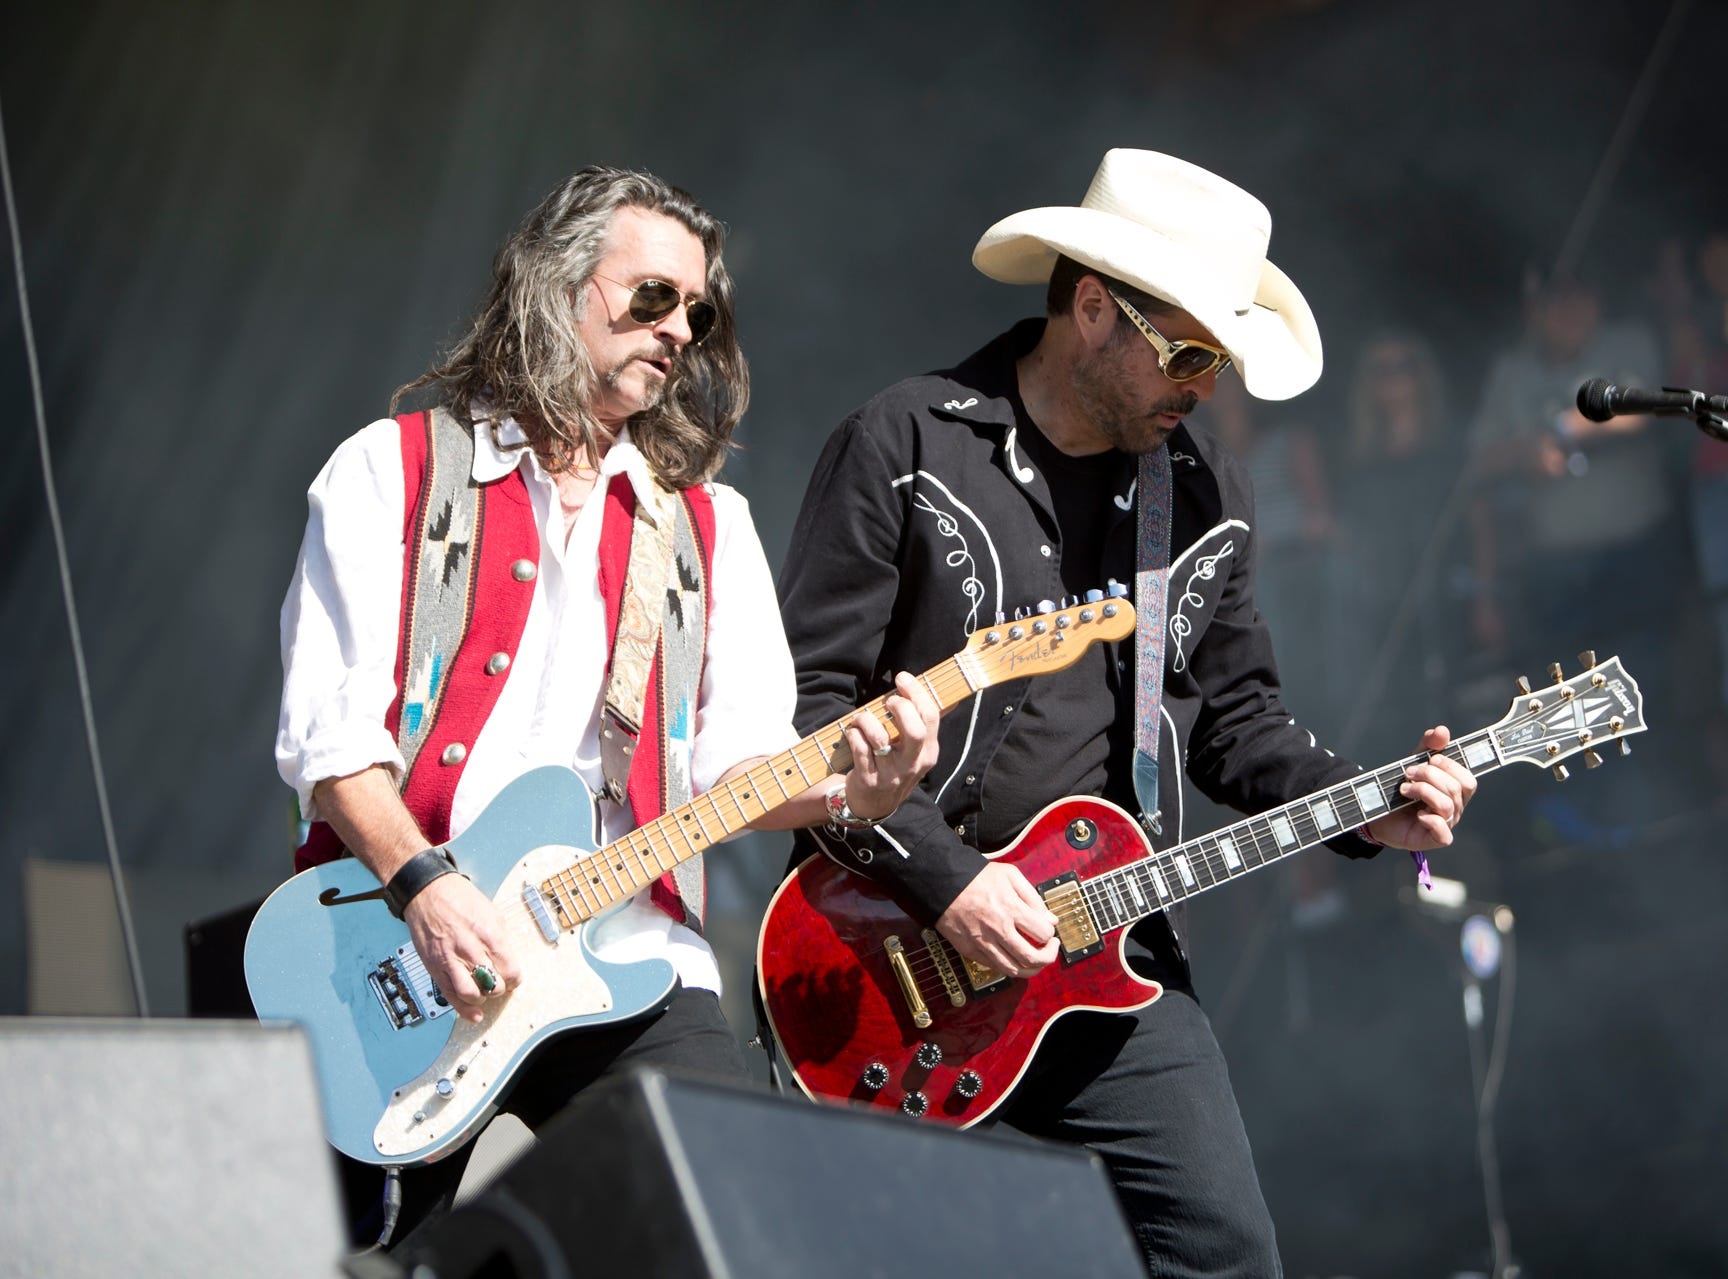 Roger Clyne and The Peacemakers perform during the Innings Festival on March 2, 2019, at Tempe Beach Park in Tempe.